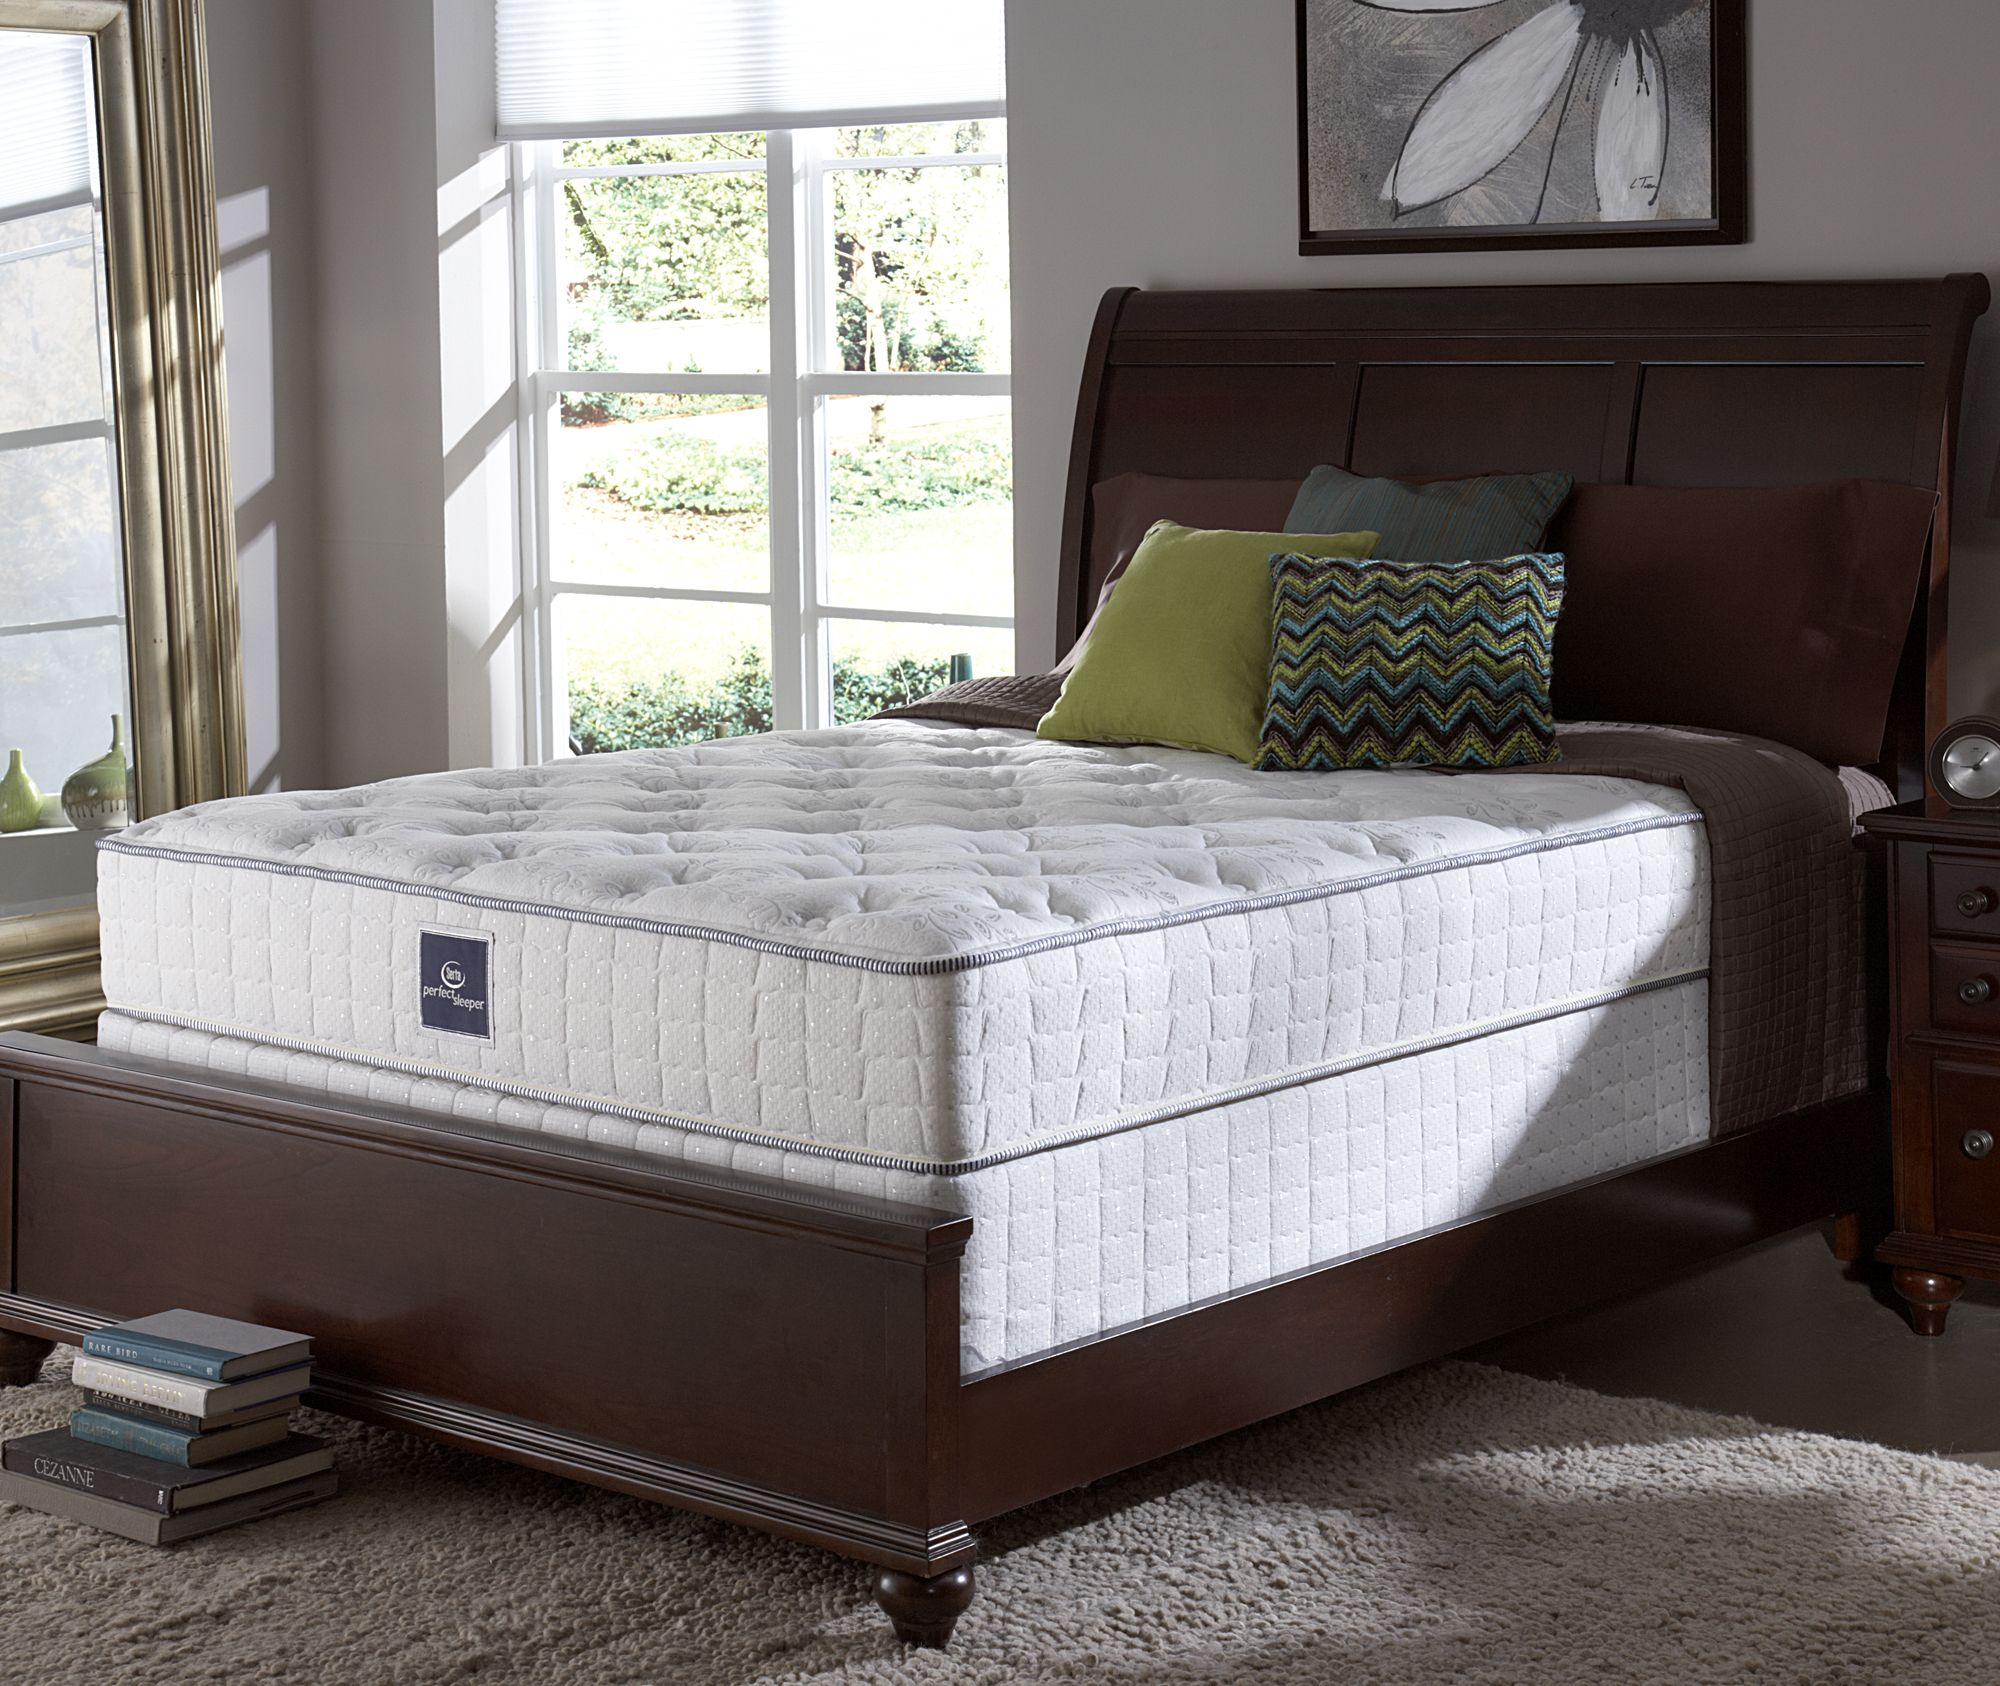 Serta CLOSEOUT - Split Queen boxspring